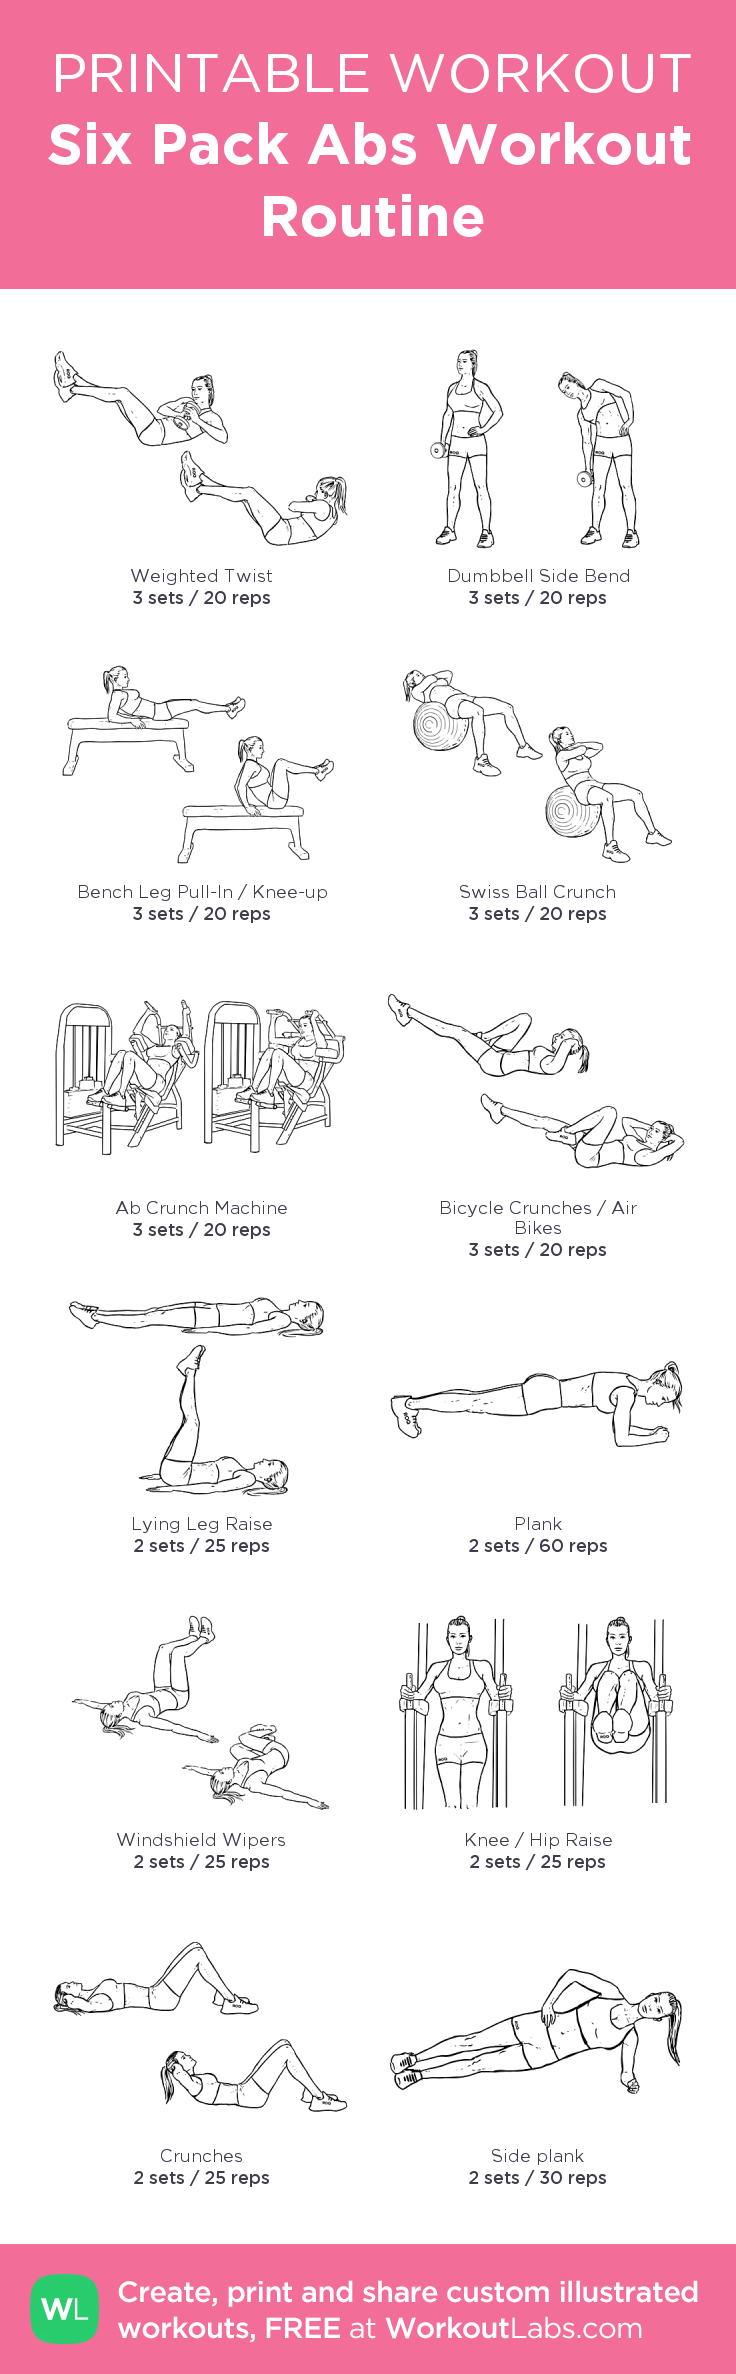 Six Pack Abs Workout Routine: my custom printable workout by